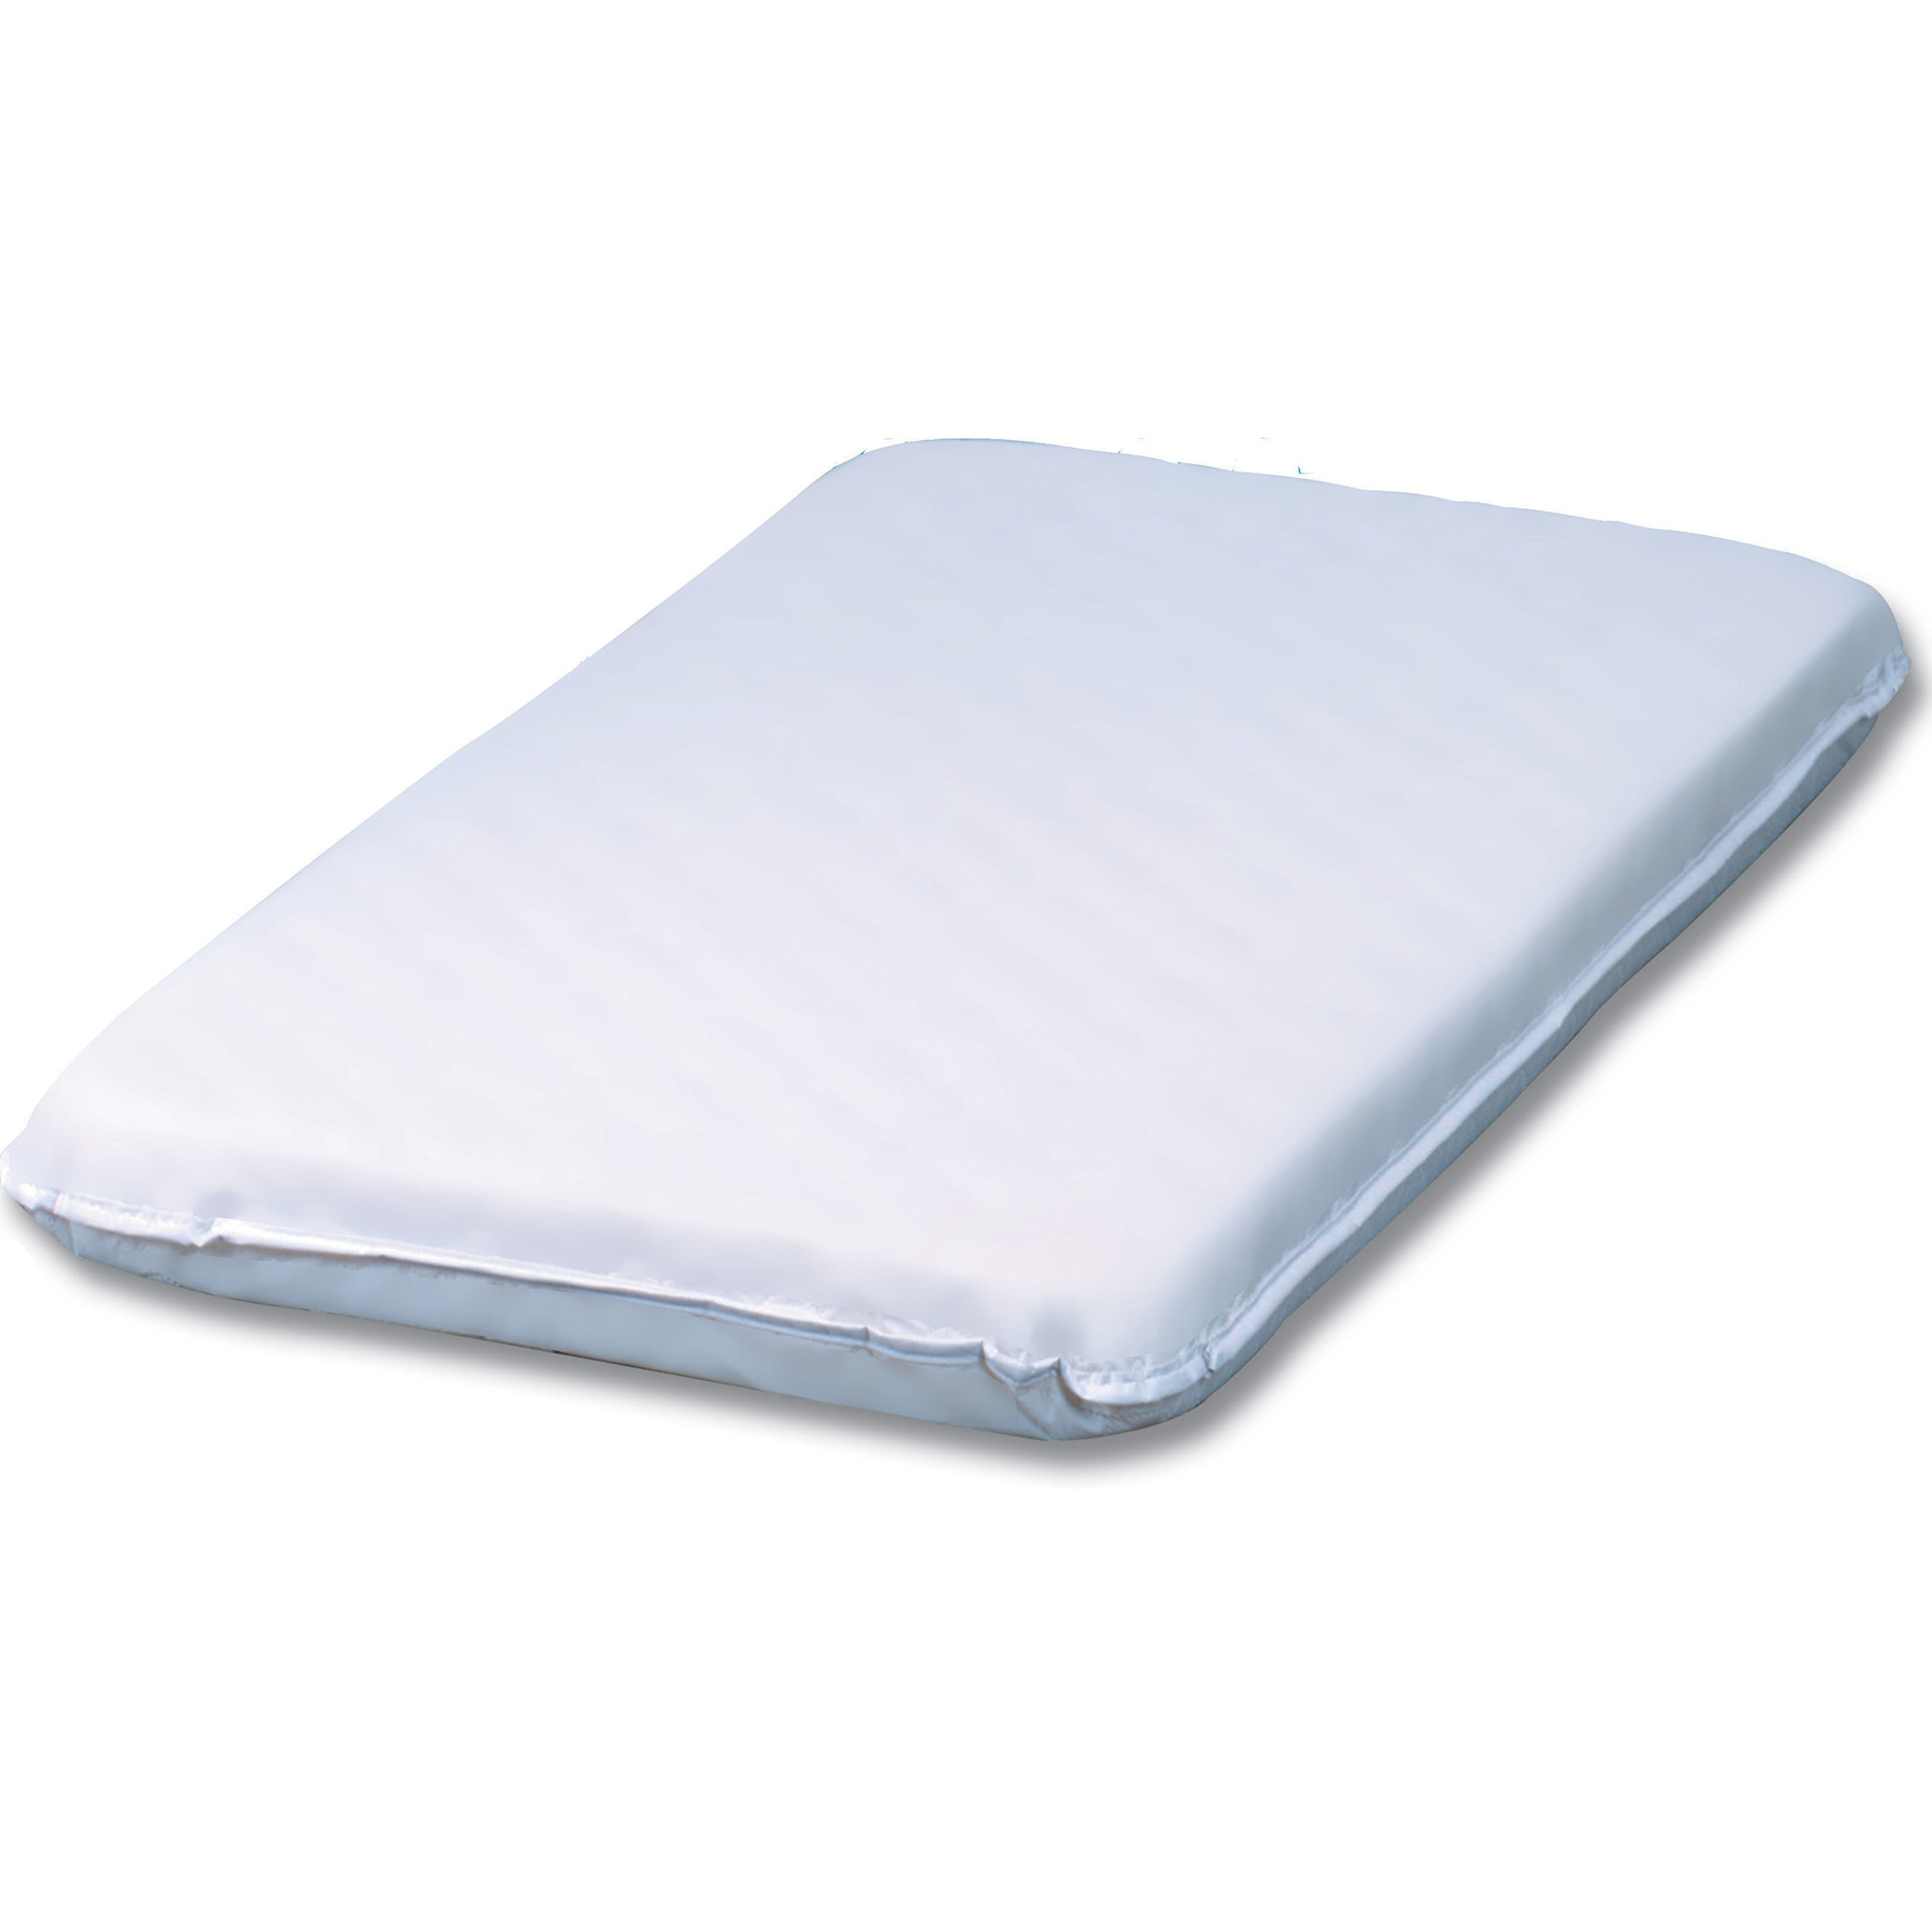 cheap baby cradle mattress sizes, find baby cradle mattress sizes